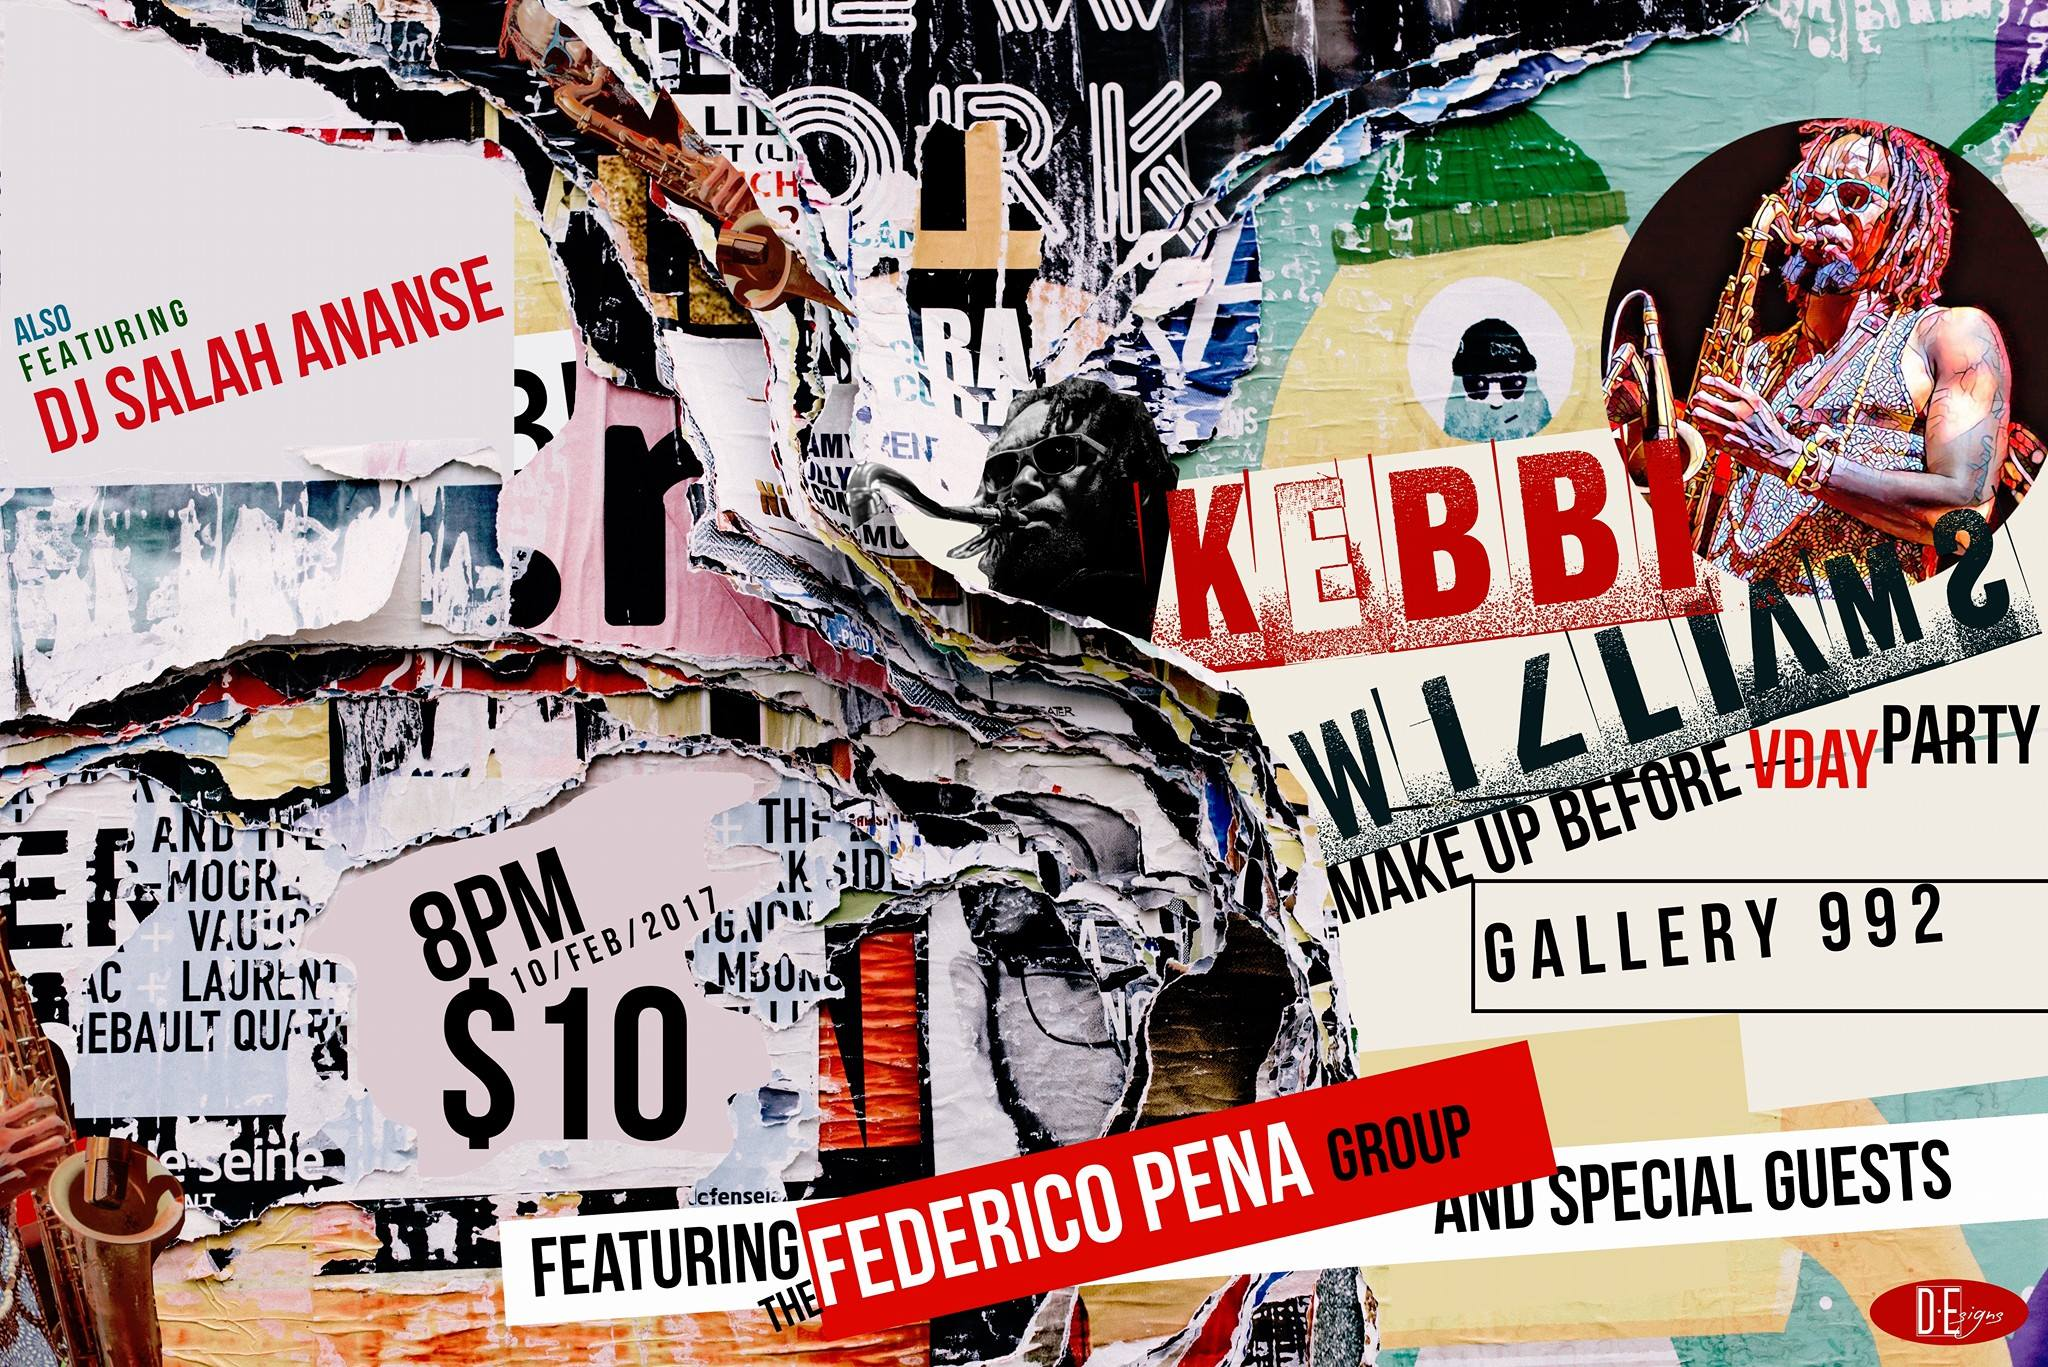 Kebbi's Birthday/Valentines party with Federico Pena.